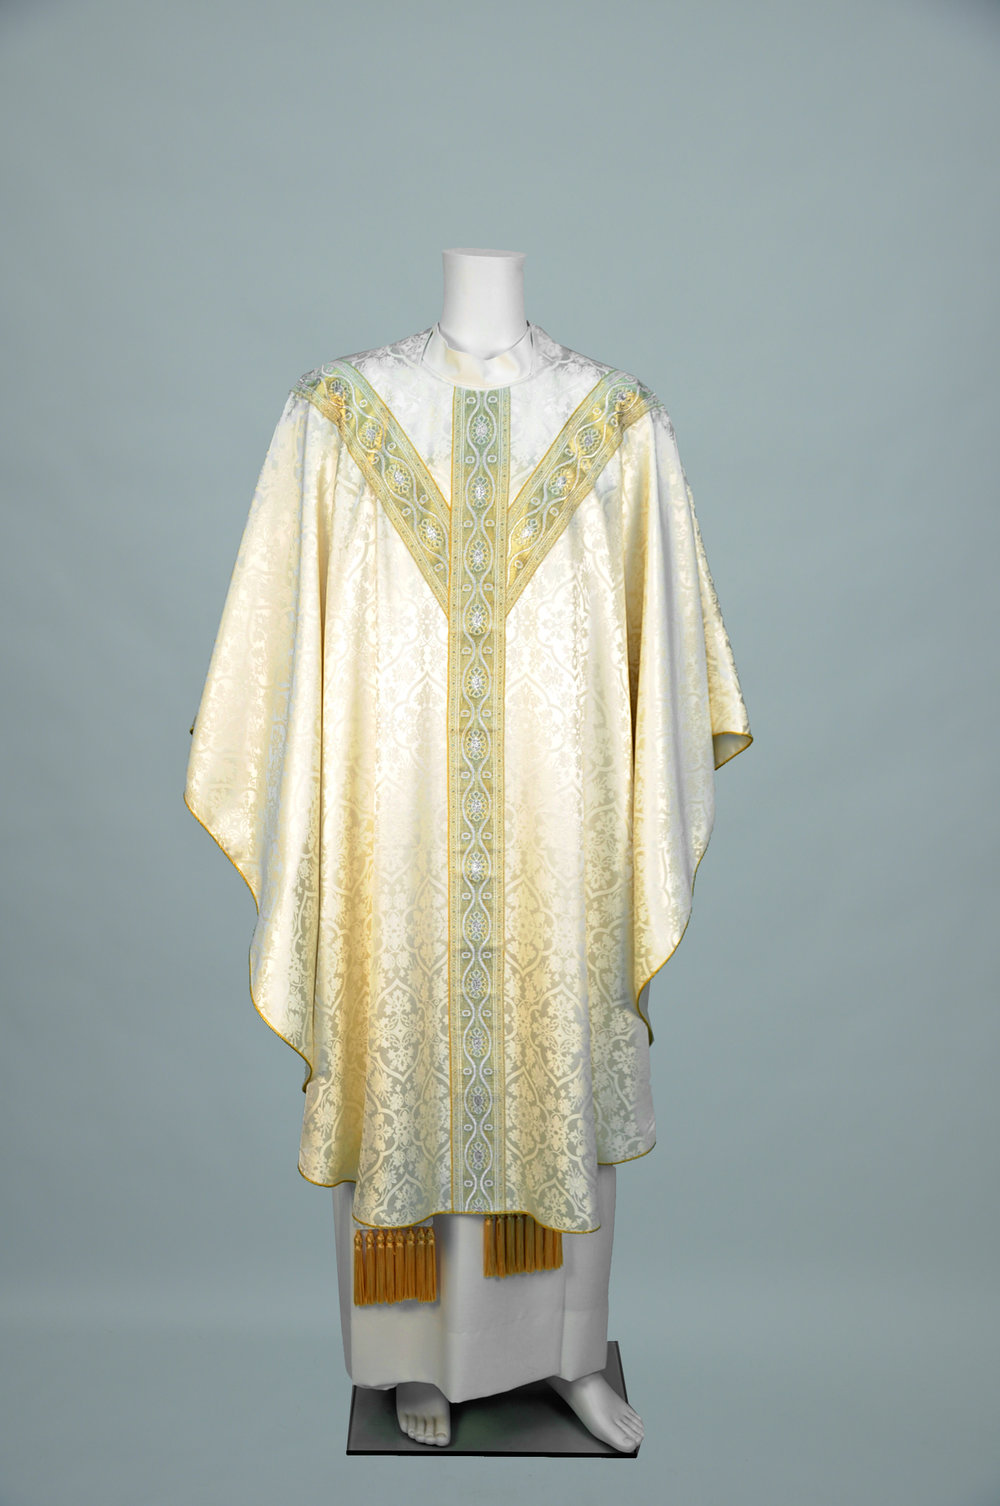 Gothic Chasuble 5146 Burgundy W Chalice banding white gold (f) 1.jpg